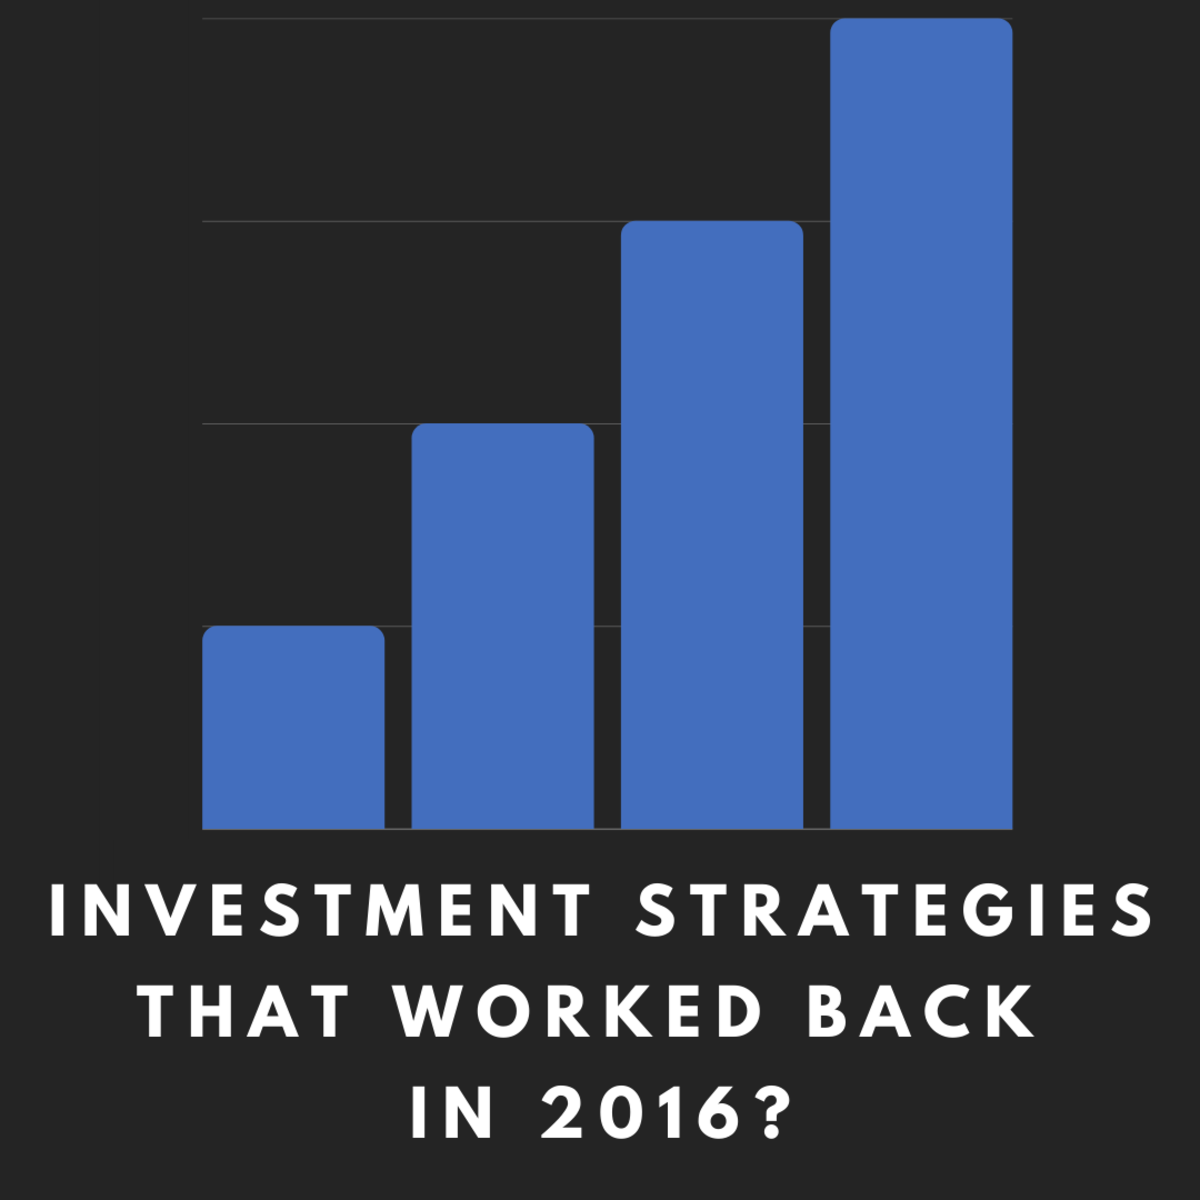 Take a look back and see which investment strategies worked back in 2016.